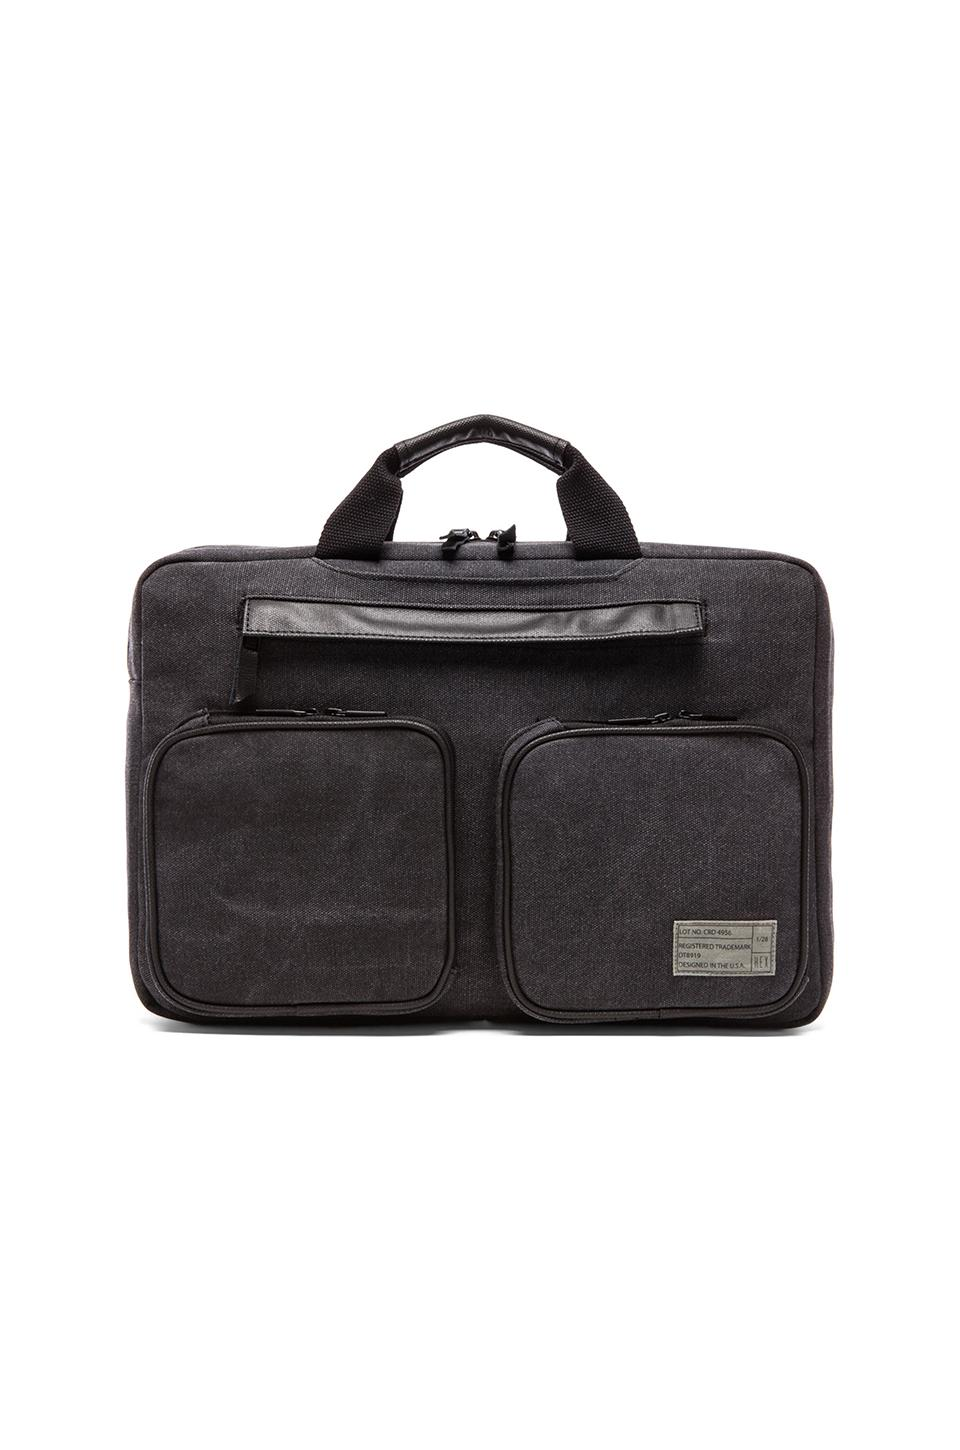 HEX Convertible Briefcase in Waxed Charcoal Canvas